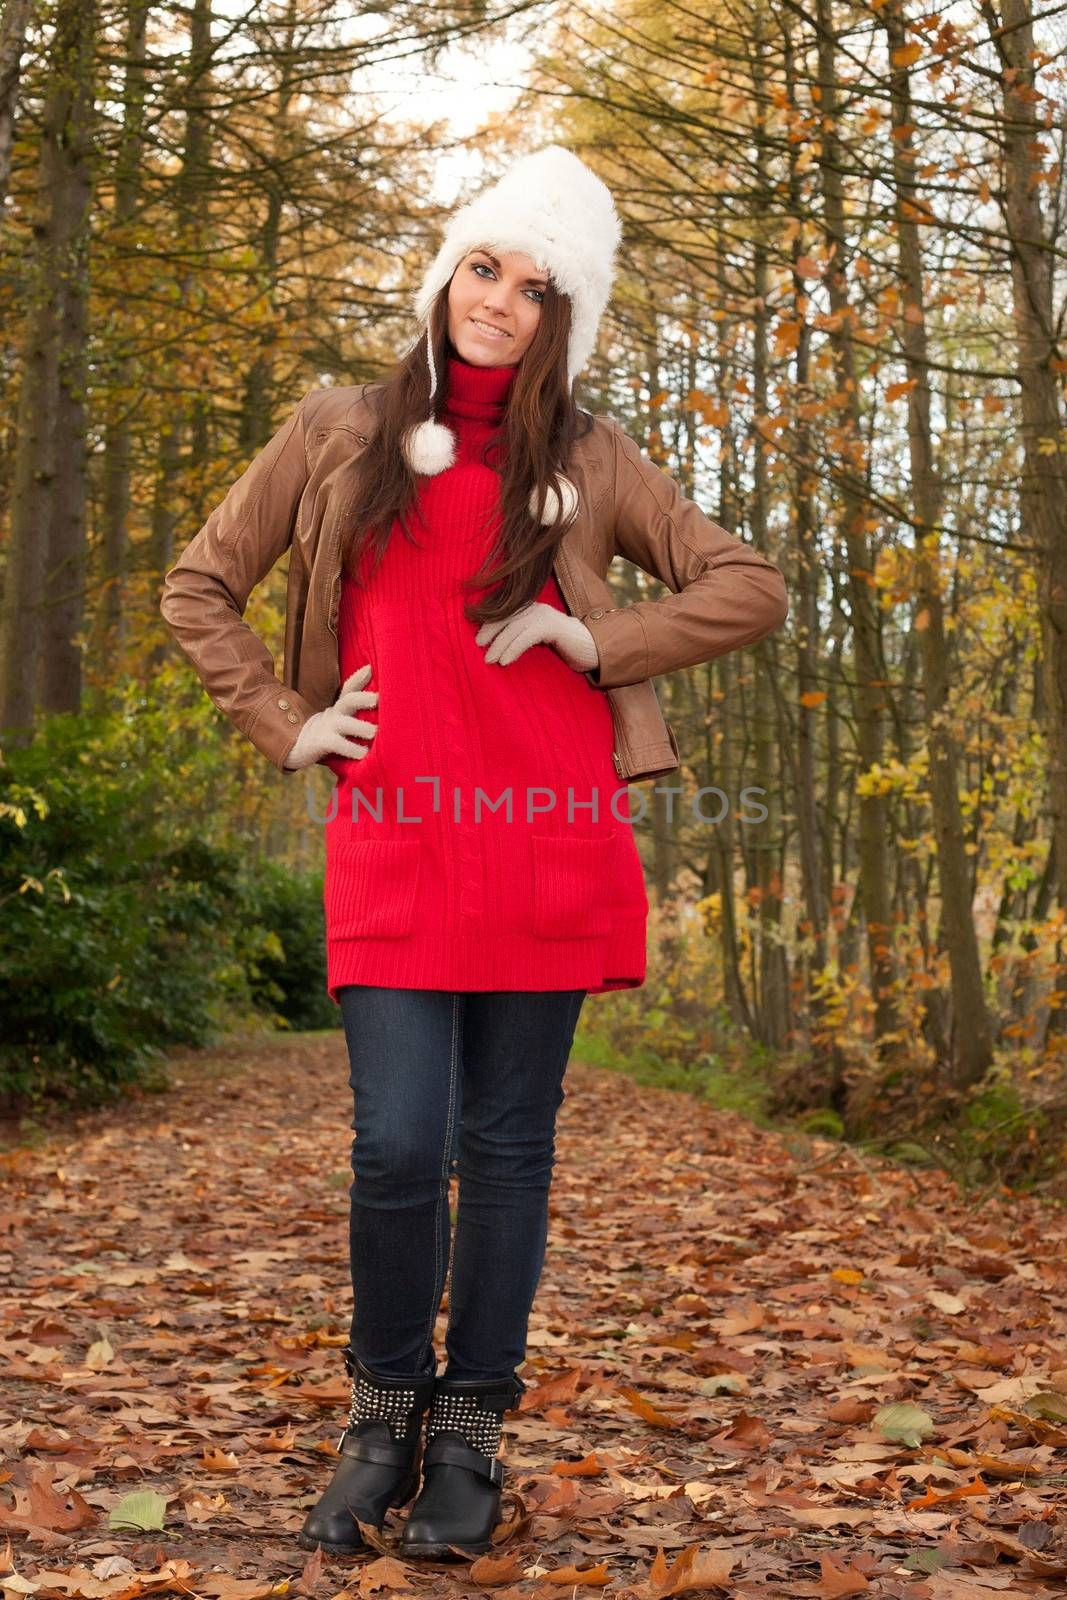 Happy brunette is having a nice time in the park while it's autumn